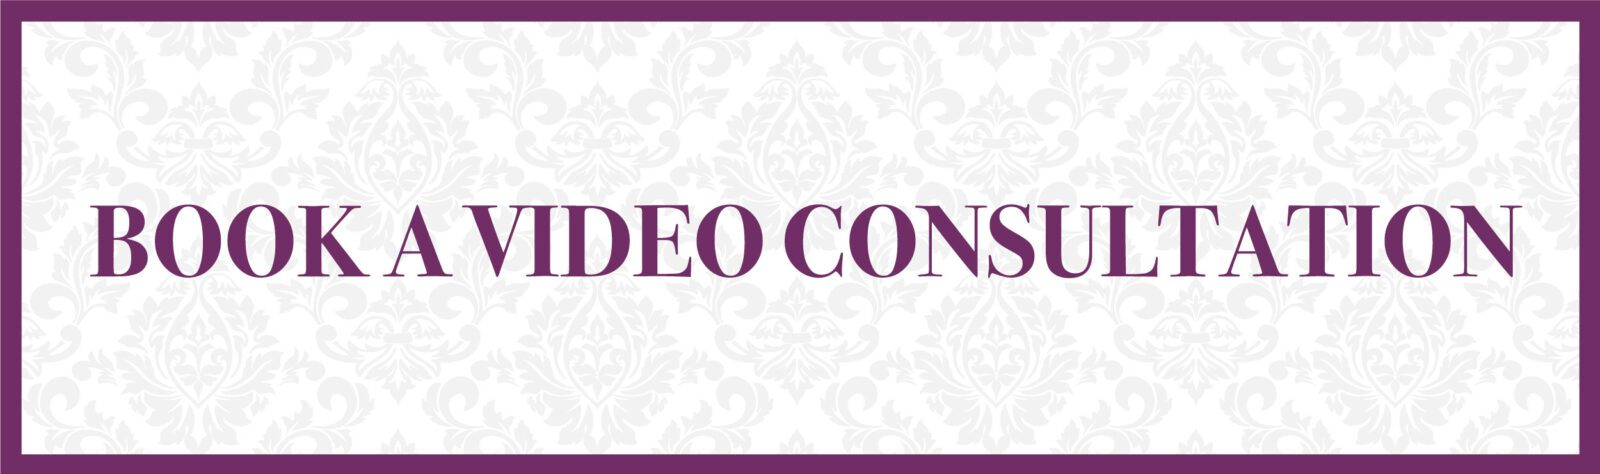 Book-A-Video-Consultation-Button